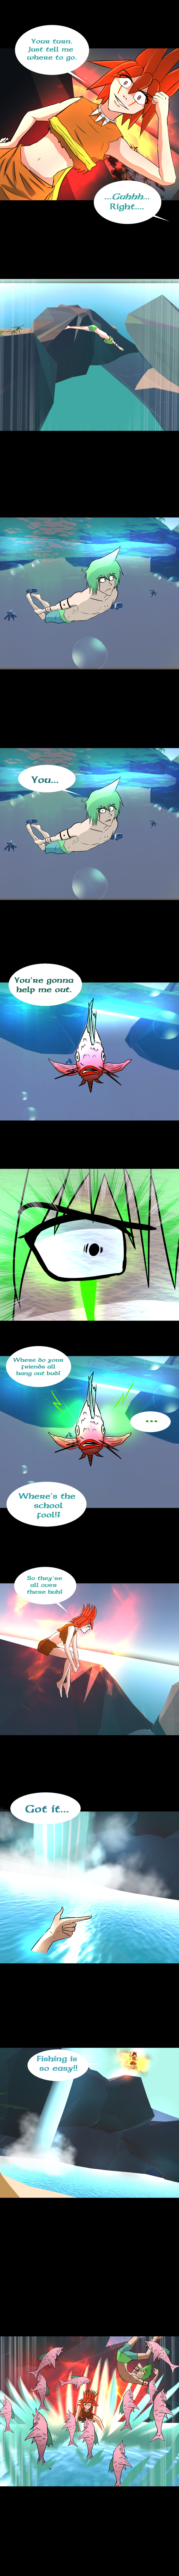 Episode 1: Page 10